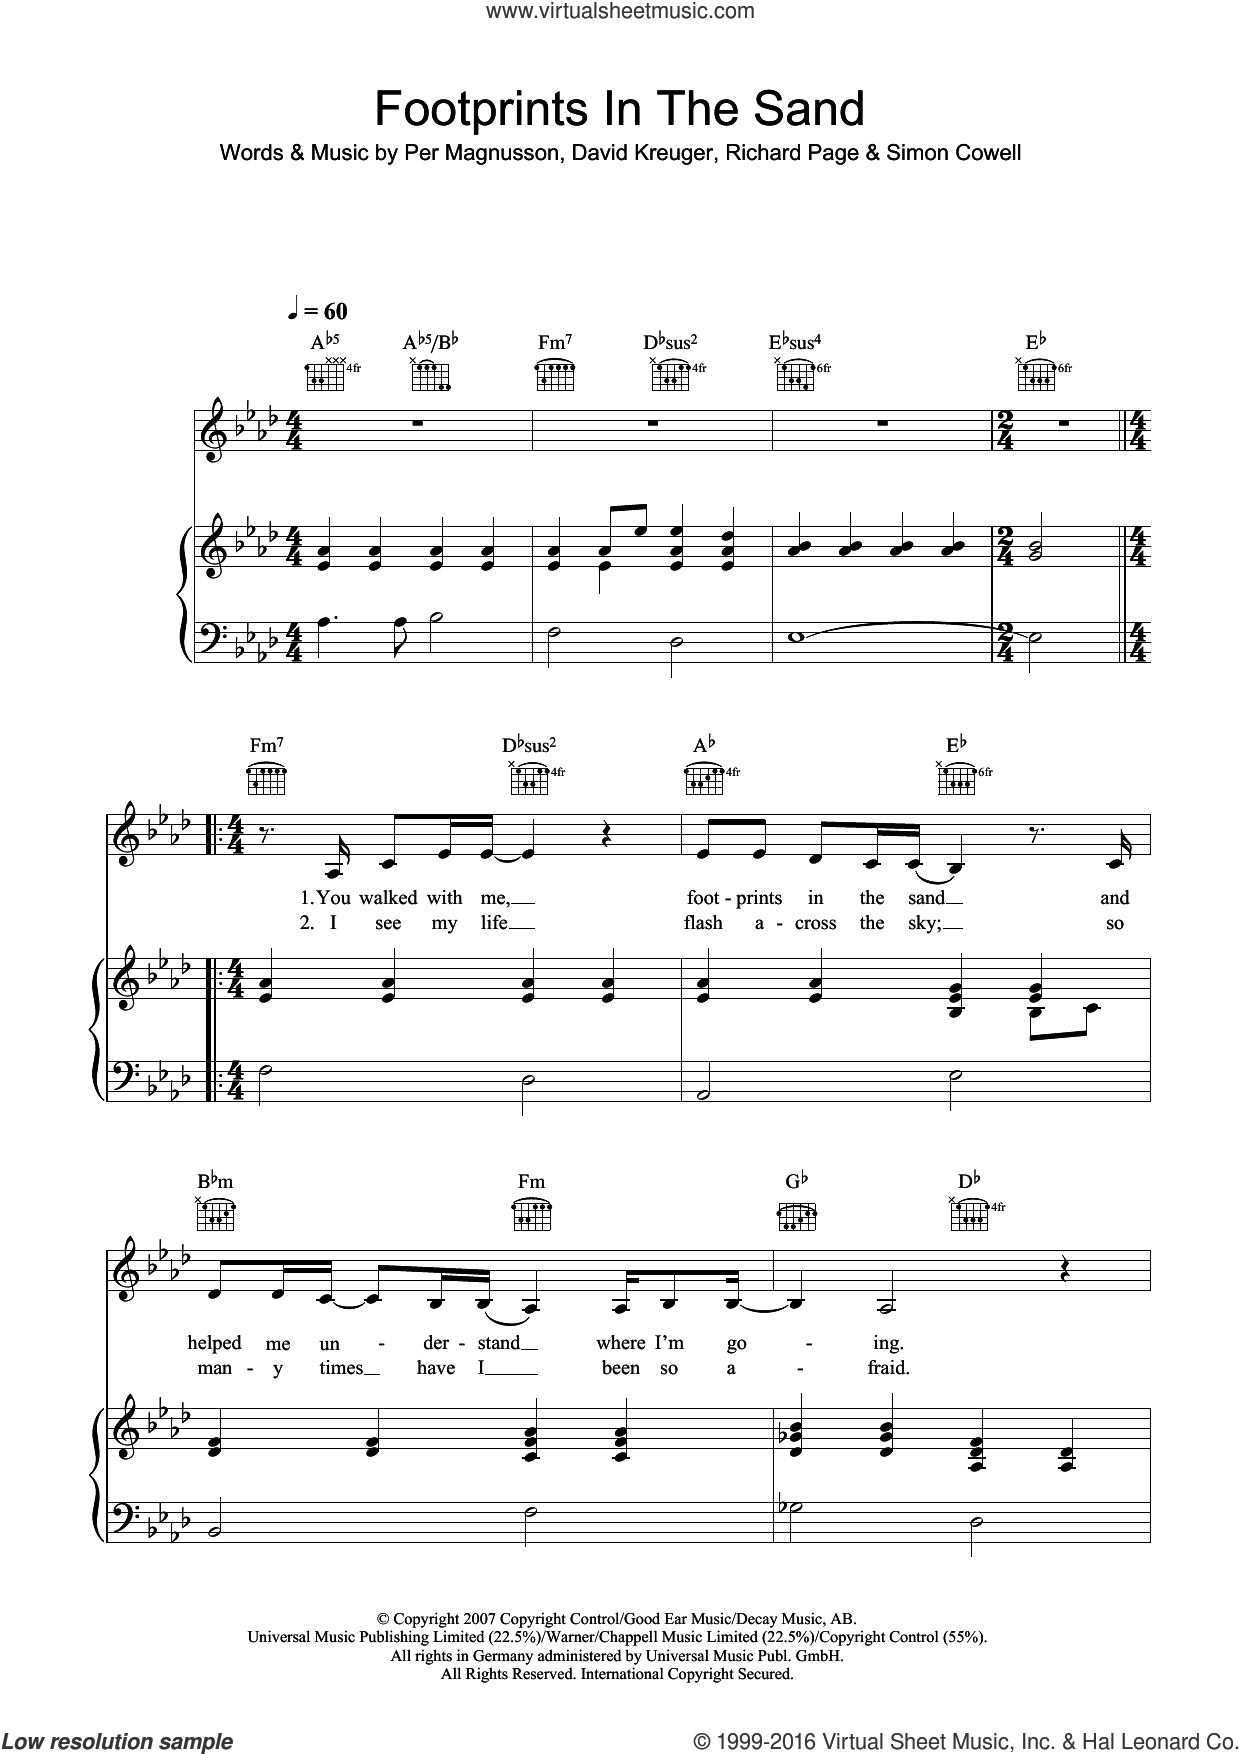 Footprints In The Sand sheet music for voice, piano or guitar by Leona Lewis, David Kreuger, Per Magnusson, Richard Page and Simon Cowell, intermediate skill level